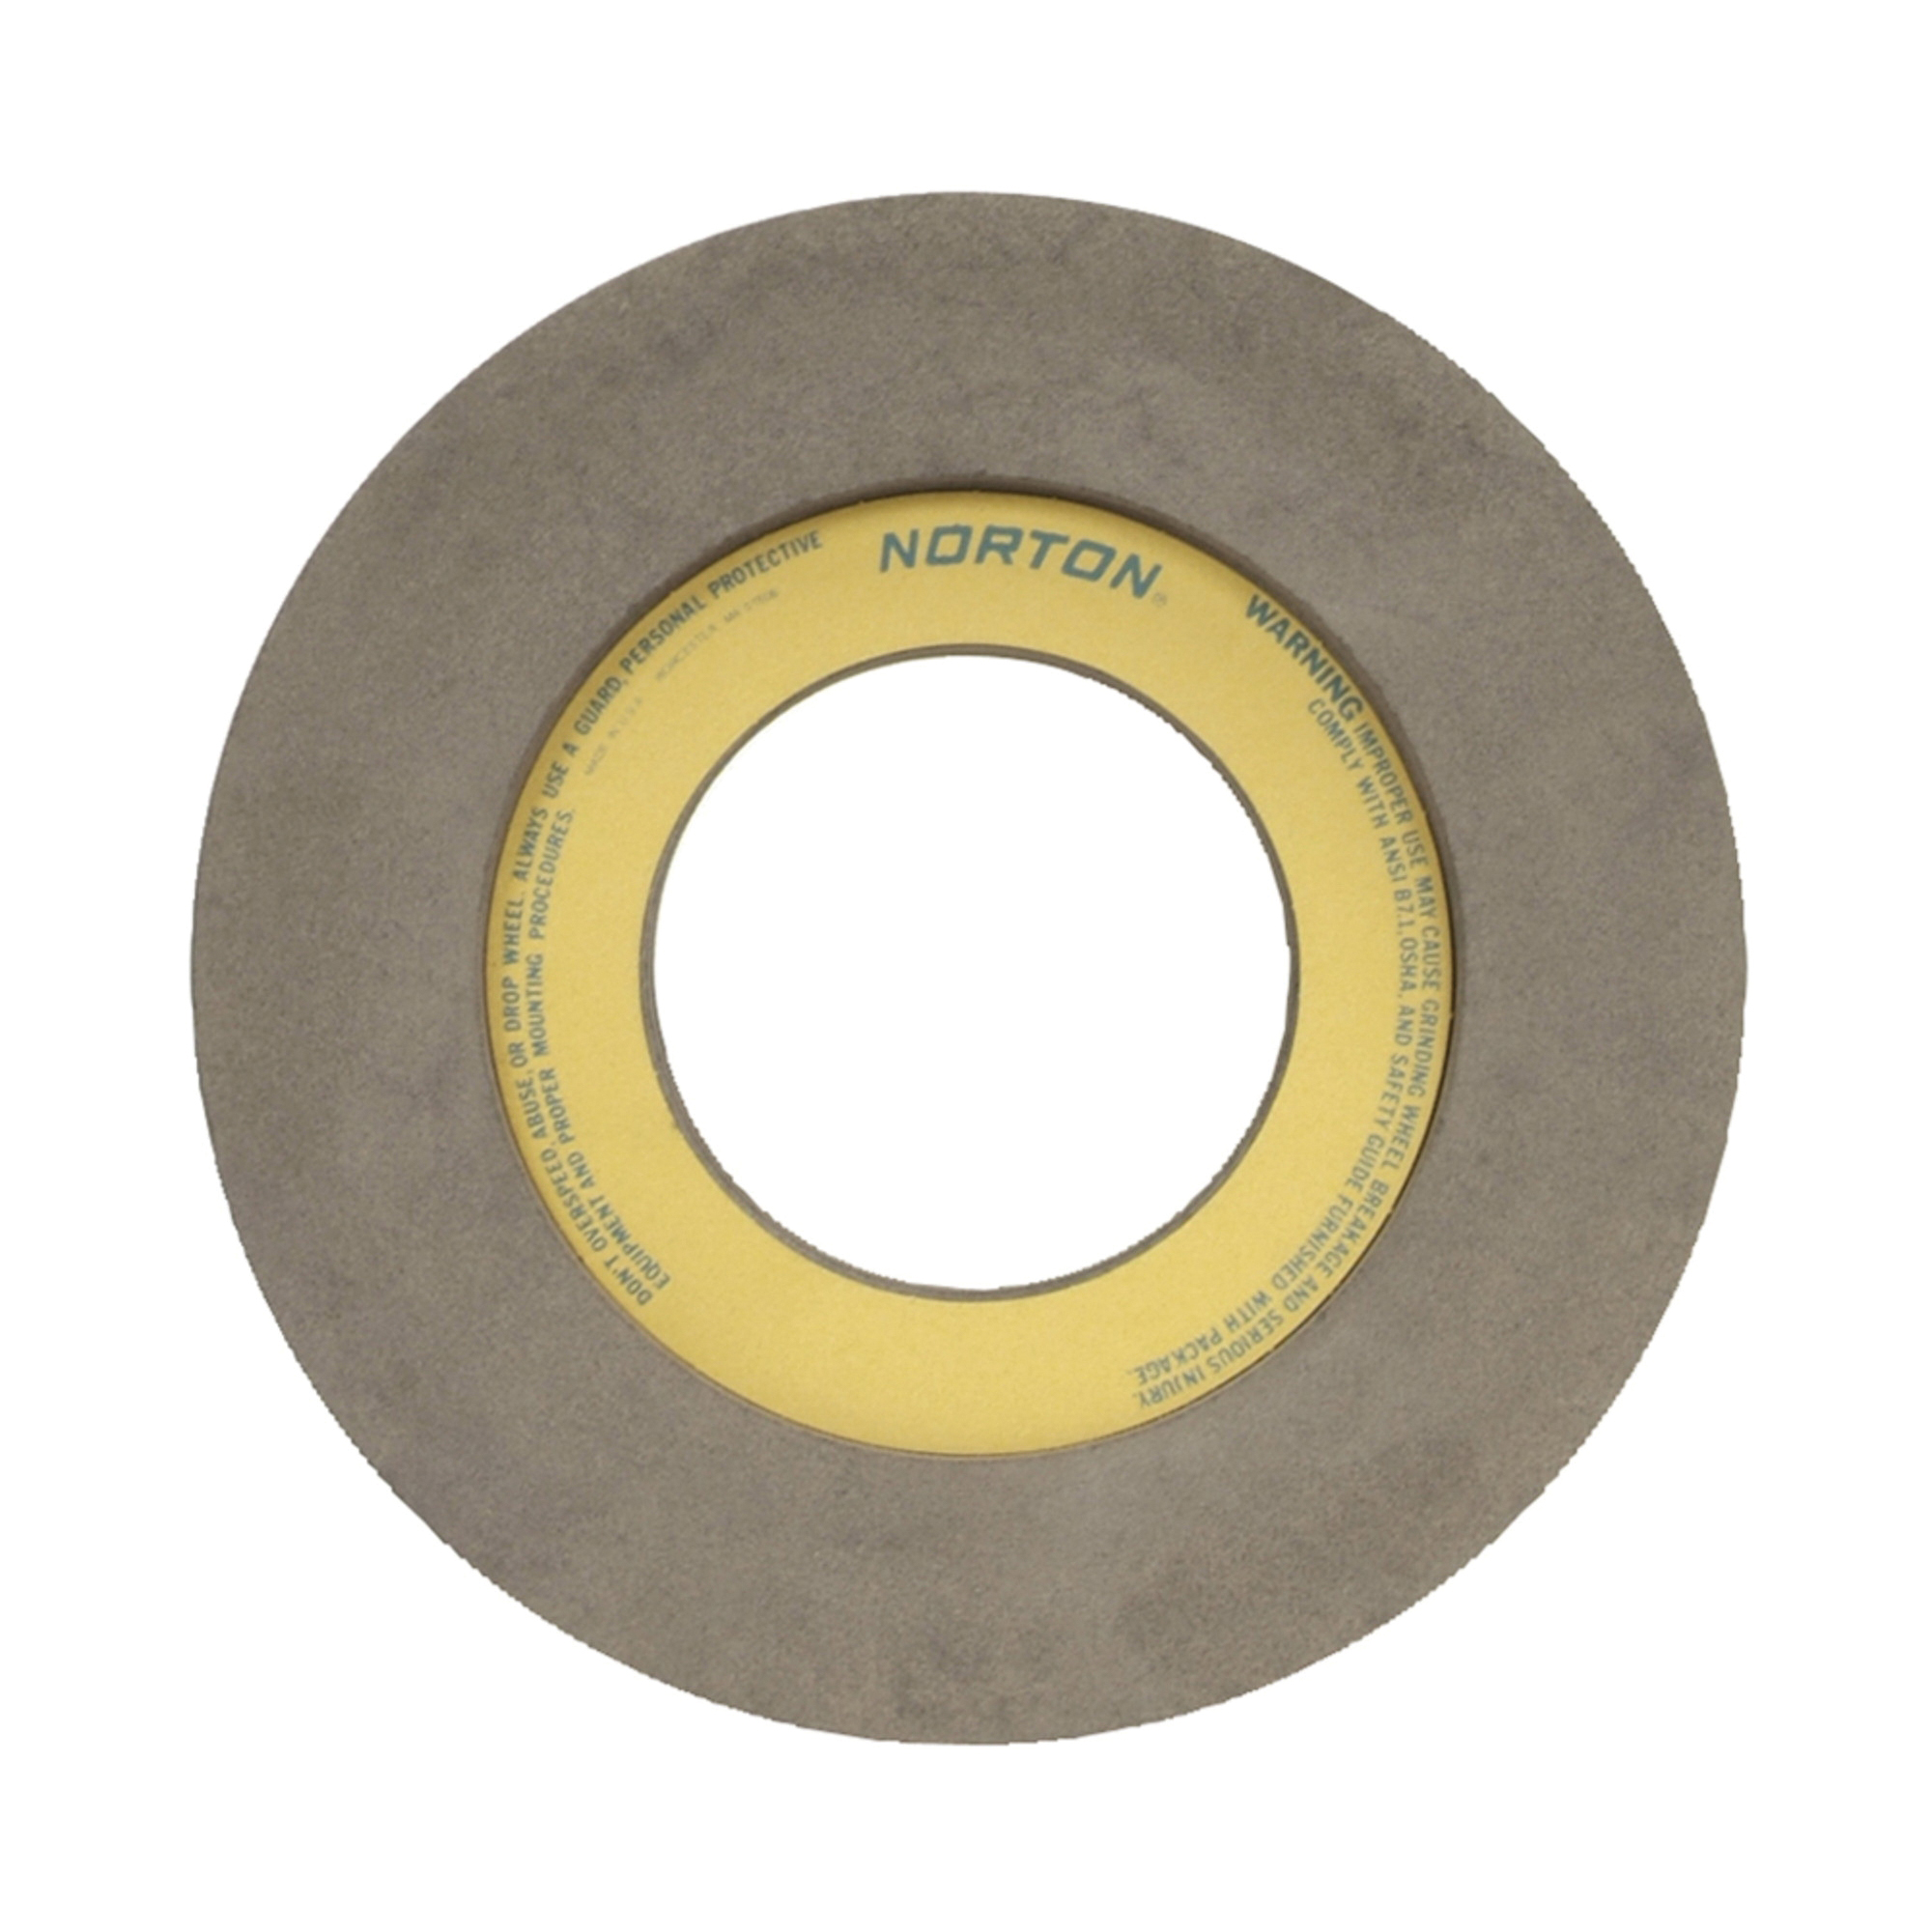 Norton® 66253222850 57A Centerless Feed Wheel, 12 in Dia x 8 in W, 5 in Hole, Type 7, 80 Grit